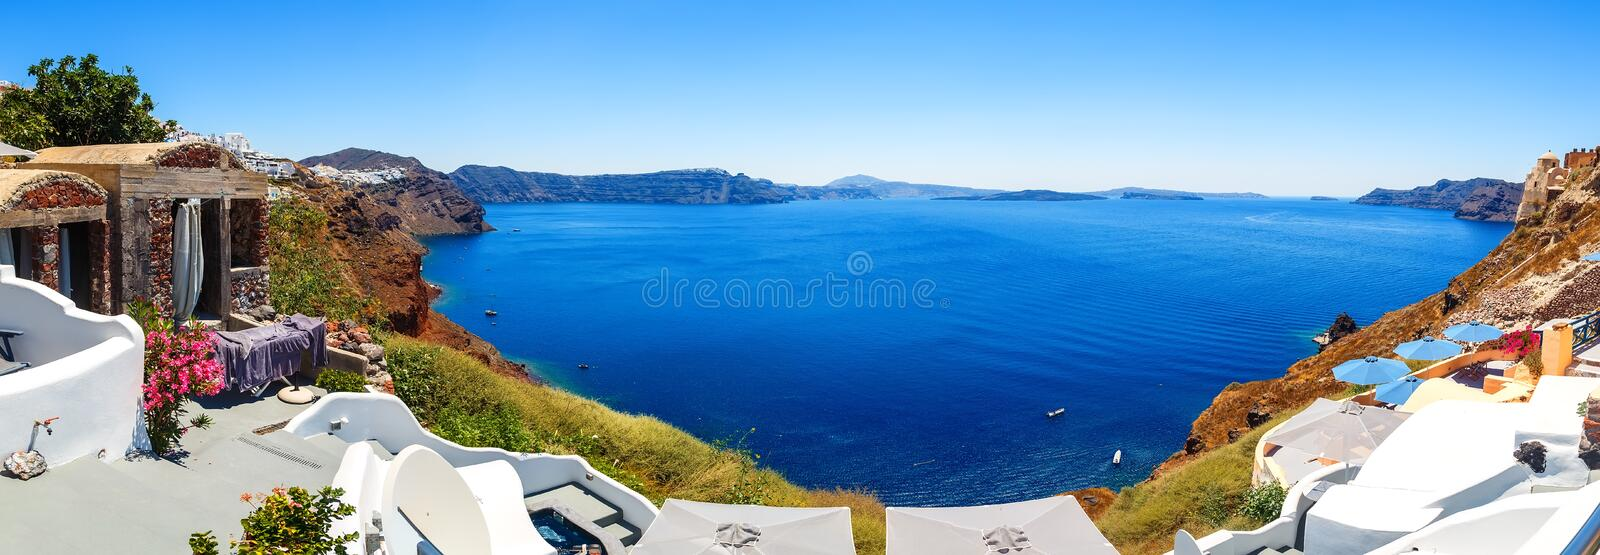 Panorama of Fira, modern capital of the Greek Aegean island, Santorini, with caldera and volcano, Greece stock images